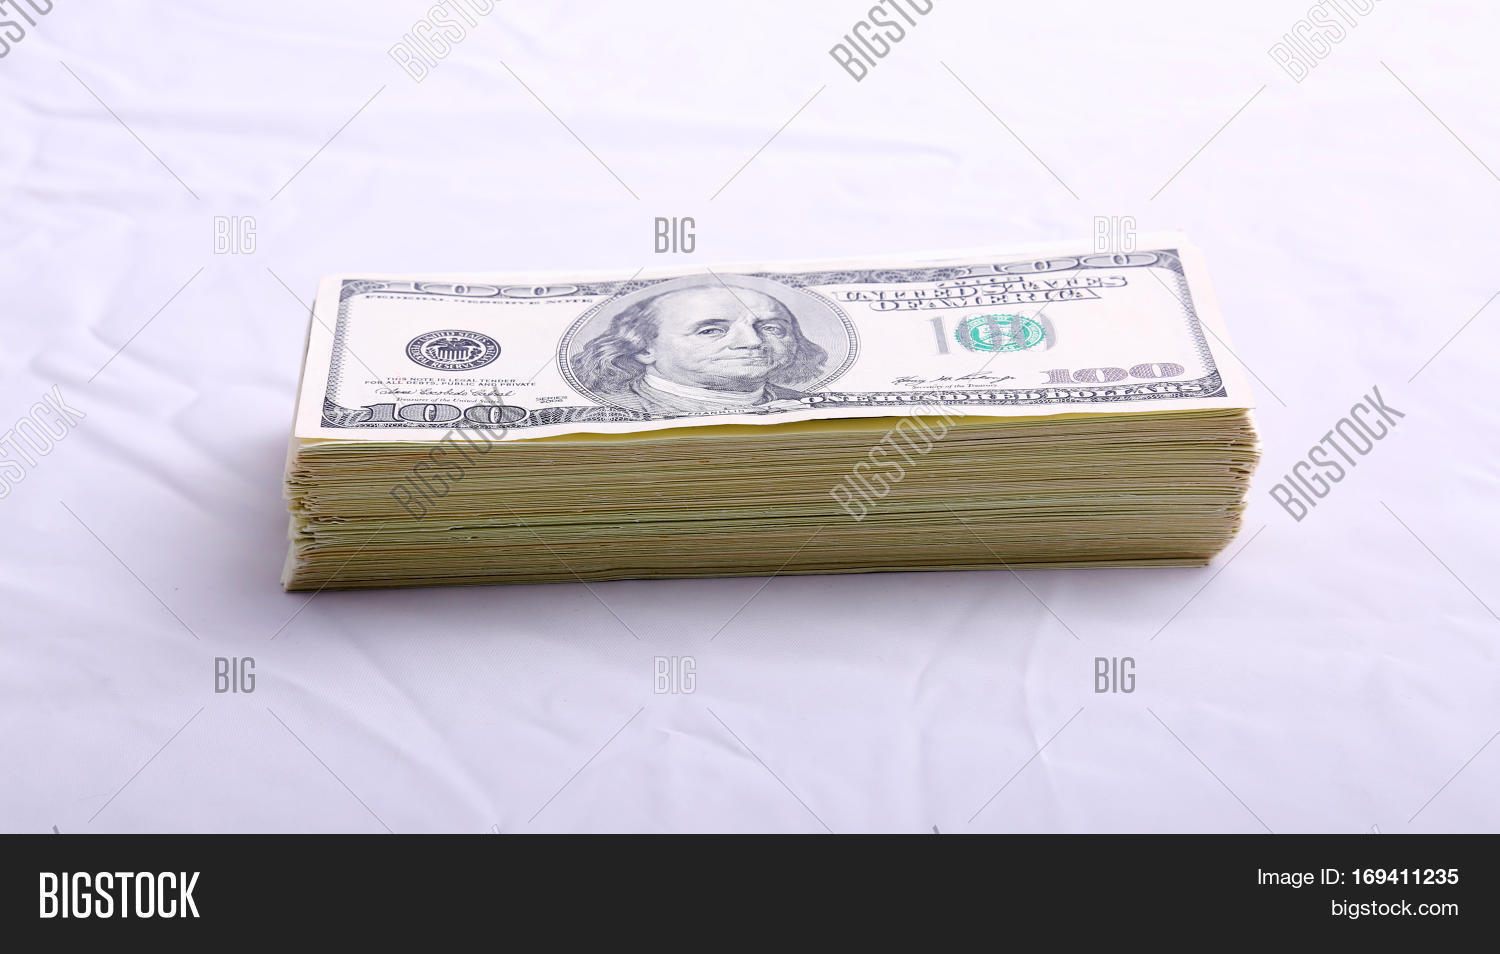 Stacks American Money Image & Photo (Free Trial) | Bigstock